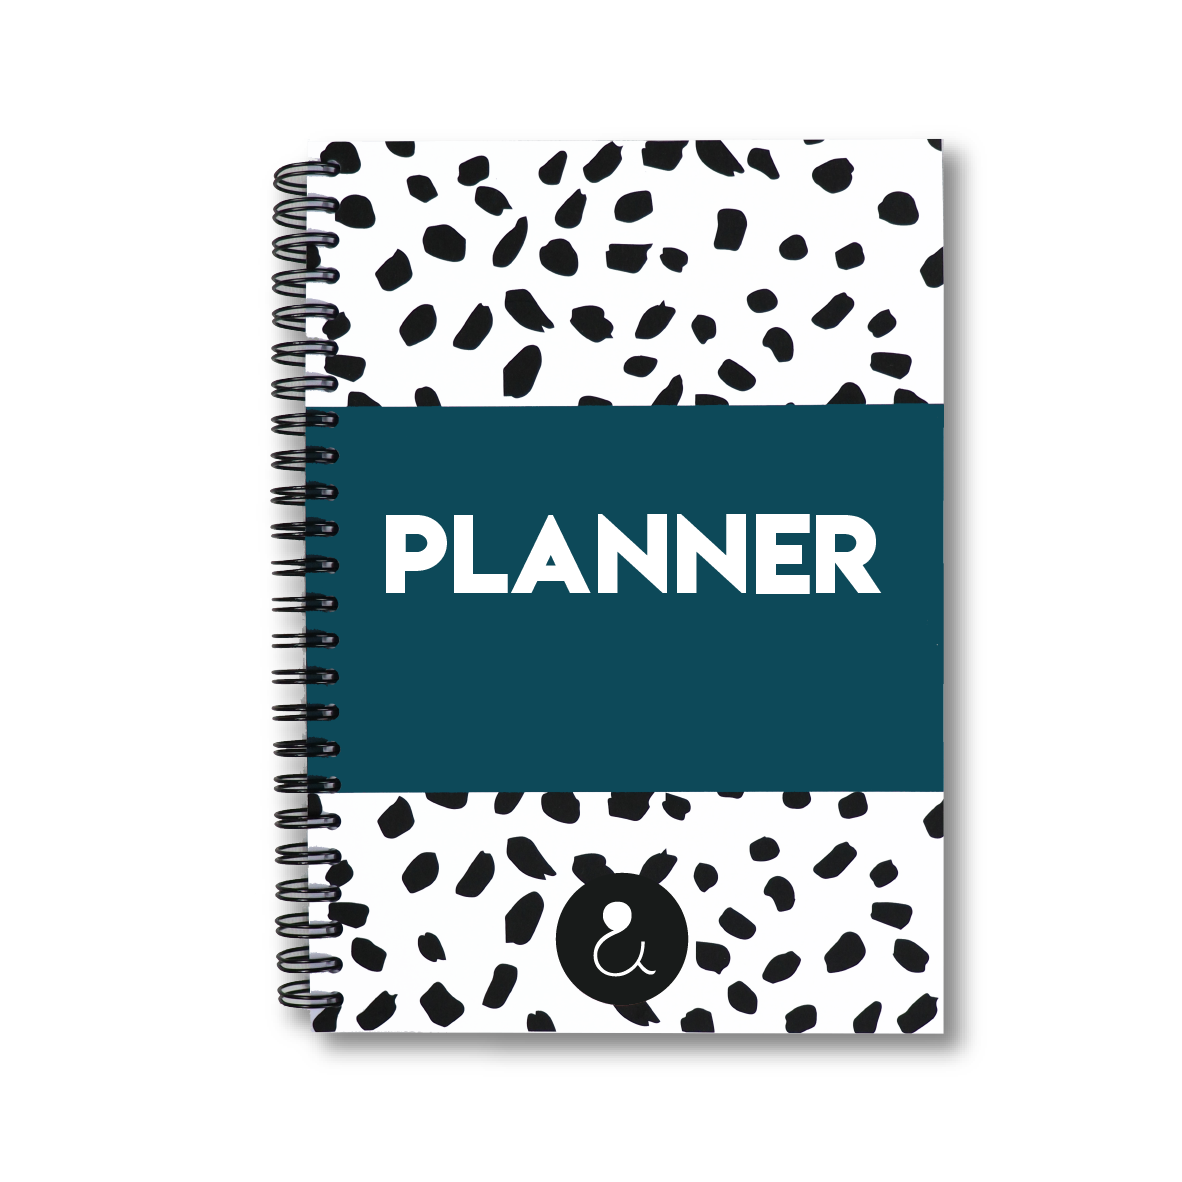 Planner a5 met stickers | donkerblauw